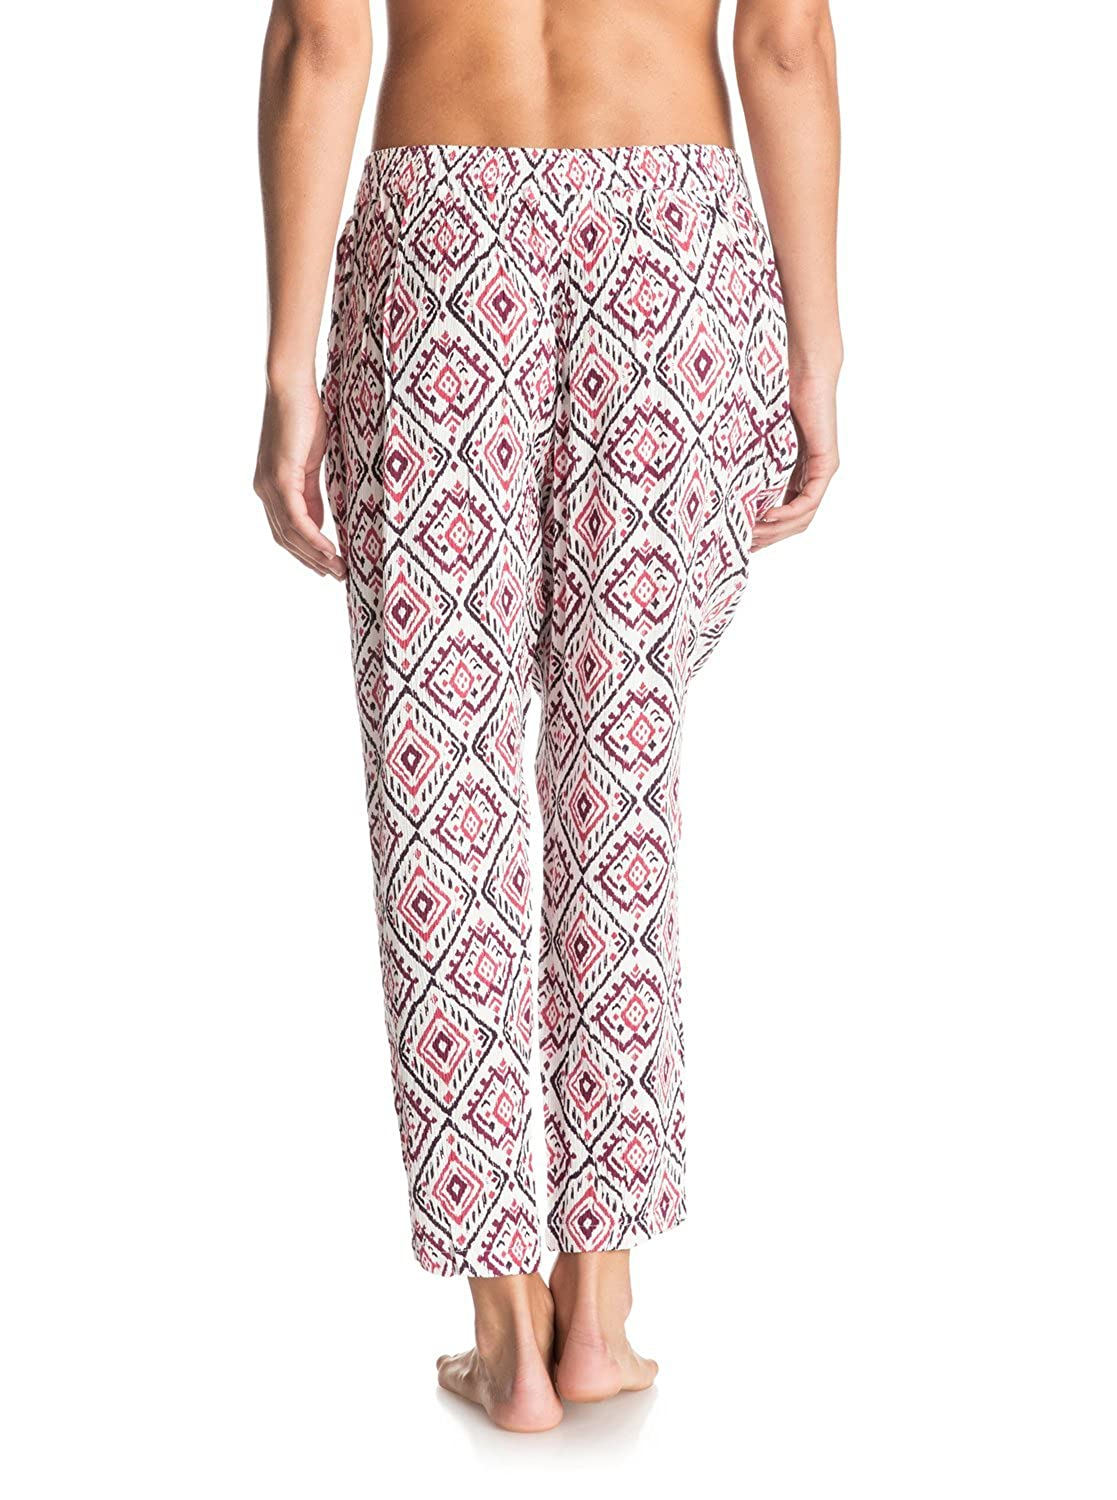 344436cb883e0 Amazon.com  Roxy Juniors Electric Mile Printed Pull on Pant  Clothing